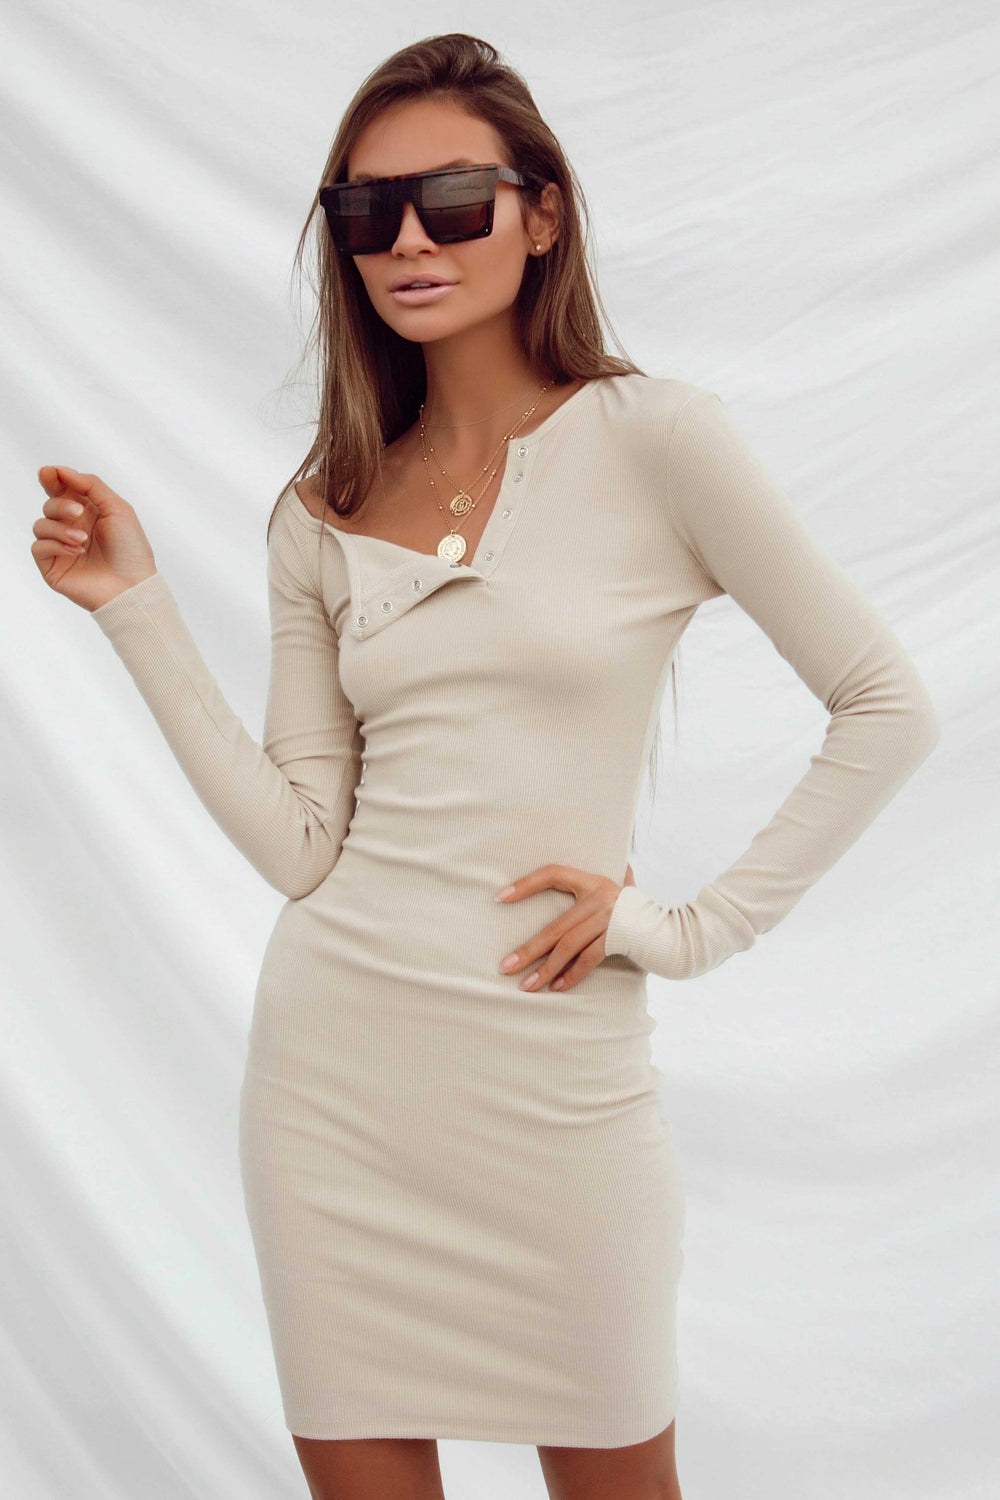 SASHA DRESS | Women's Online Shopping | CHICLEFRIQUE